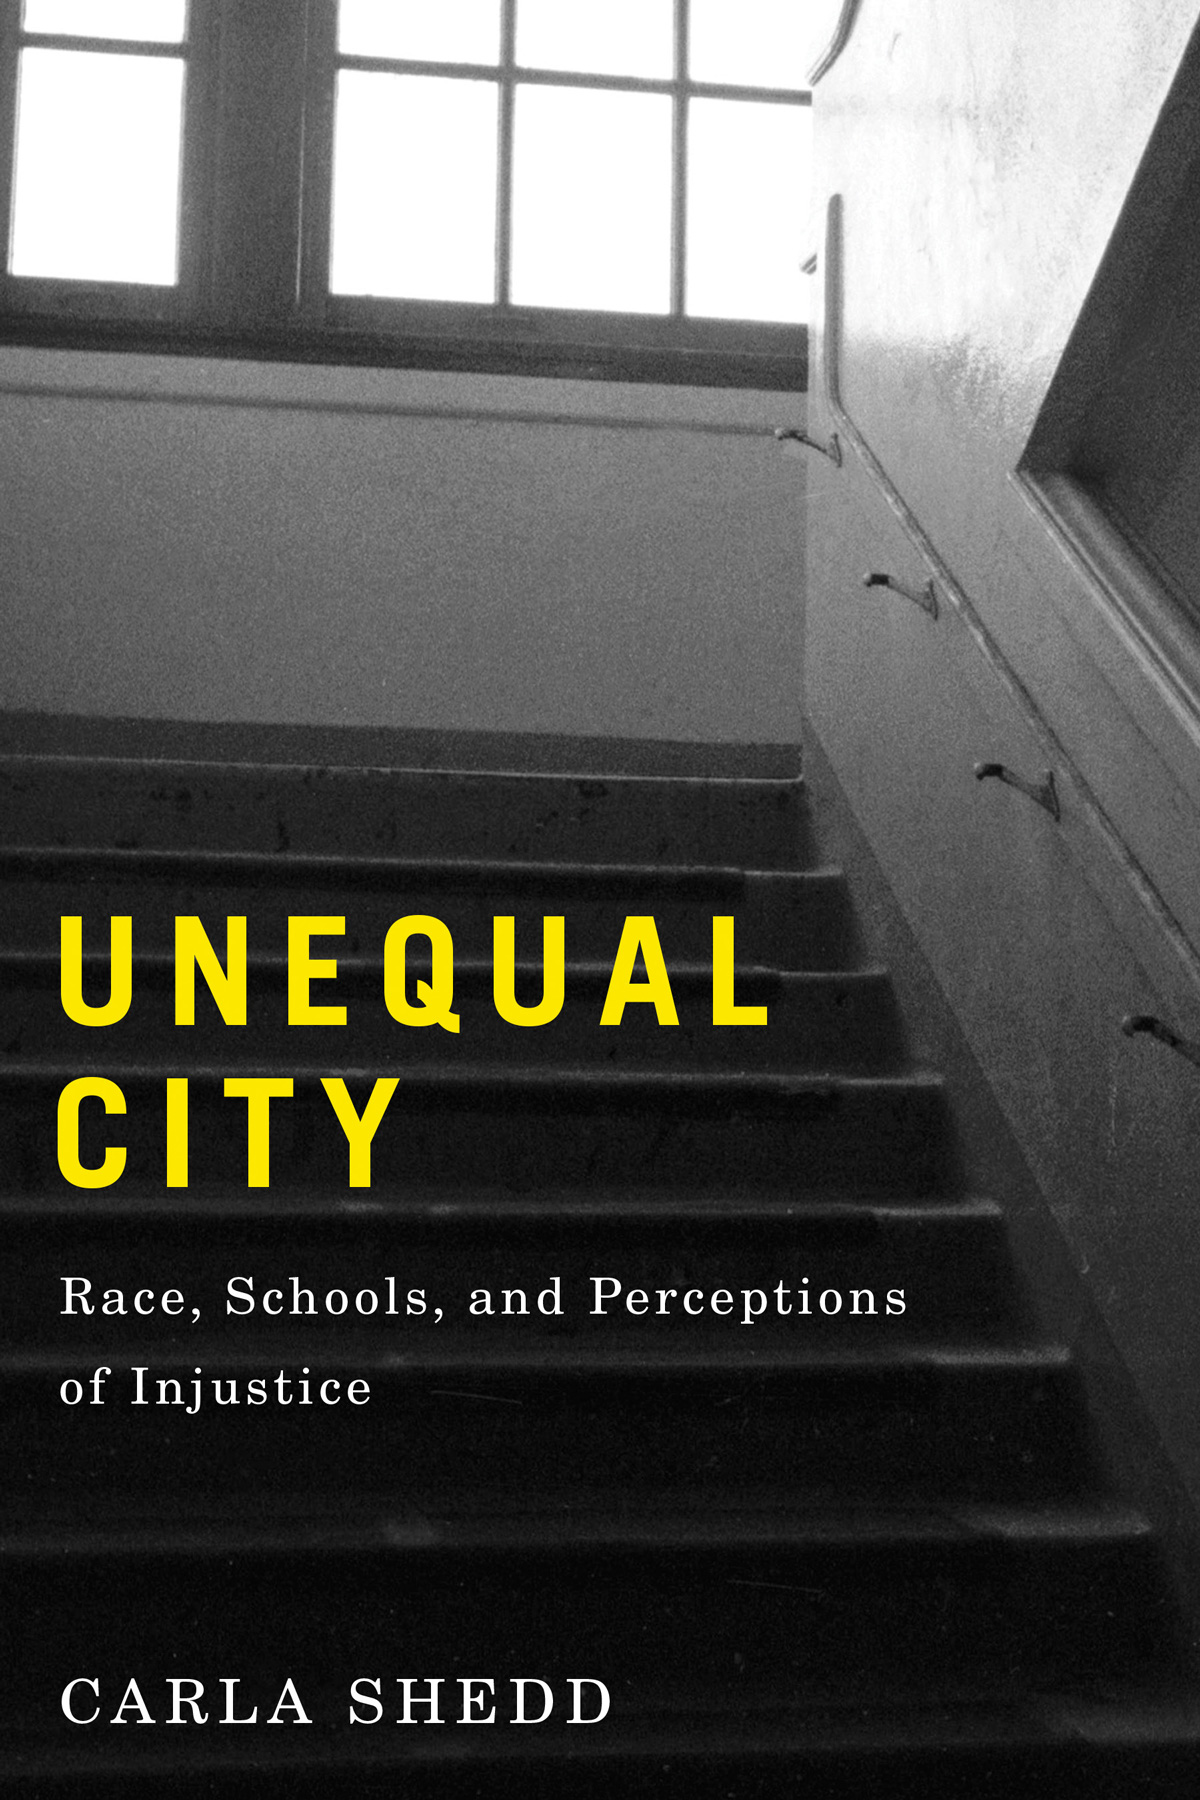 Unequal City. Race, Schools, and Perceptions of Injustice